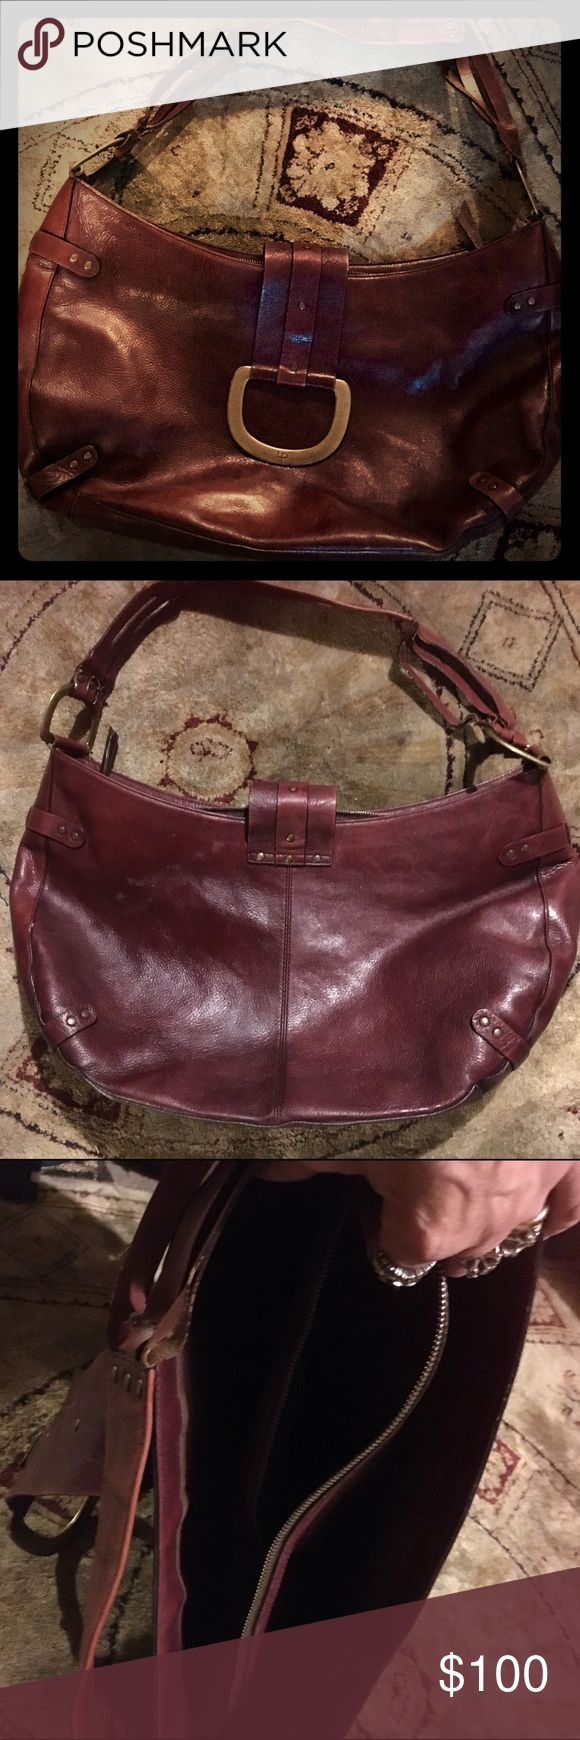 """LINEA  PELLE BROWN LEATHER LARGE HOBO STYLE BAG_ This is a large hobo style bag it's made up brown leather by the designer LINEA  PELLE .  It has a strap that holds over the top and Susan place with a magnet. There are three compartments on the inside and the middle one has a zipper! This is a large bag of that measures 21"""" wide , 11"""" high The strap drop of 12 inches!  You can fit everything but the kitchen sink in there. It's very spacious!  The craftsmanship and the material used to make…"""